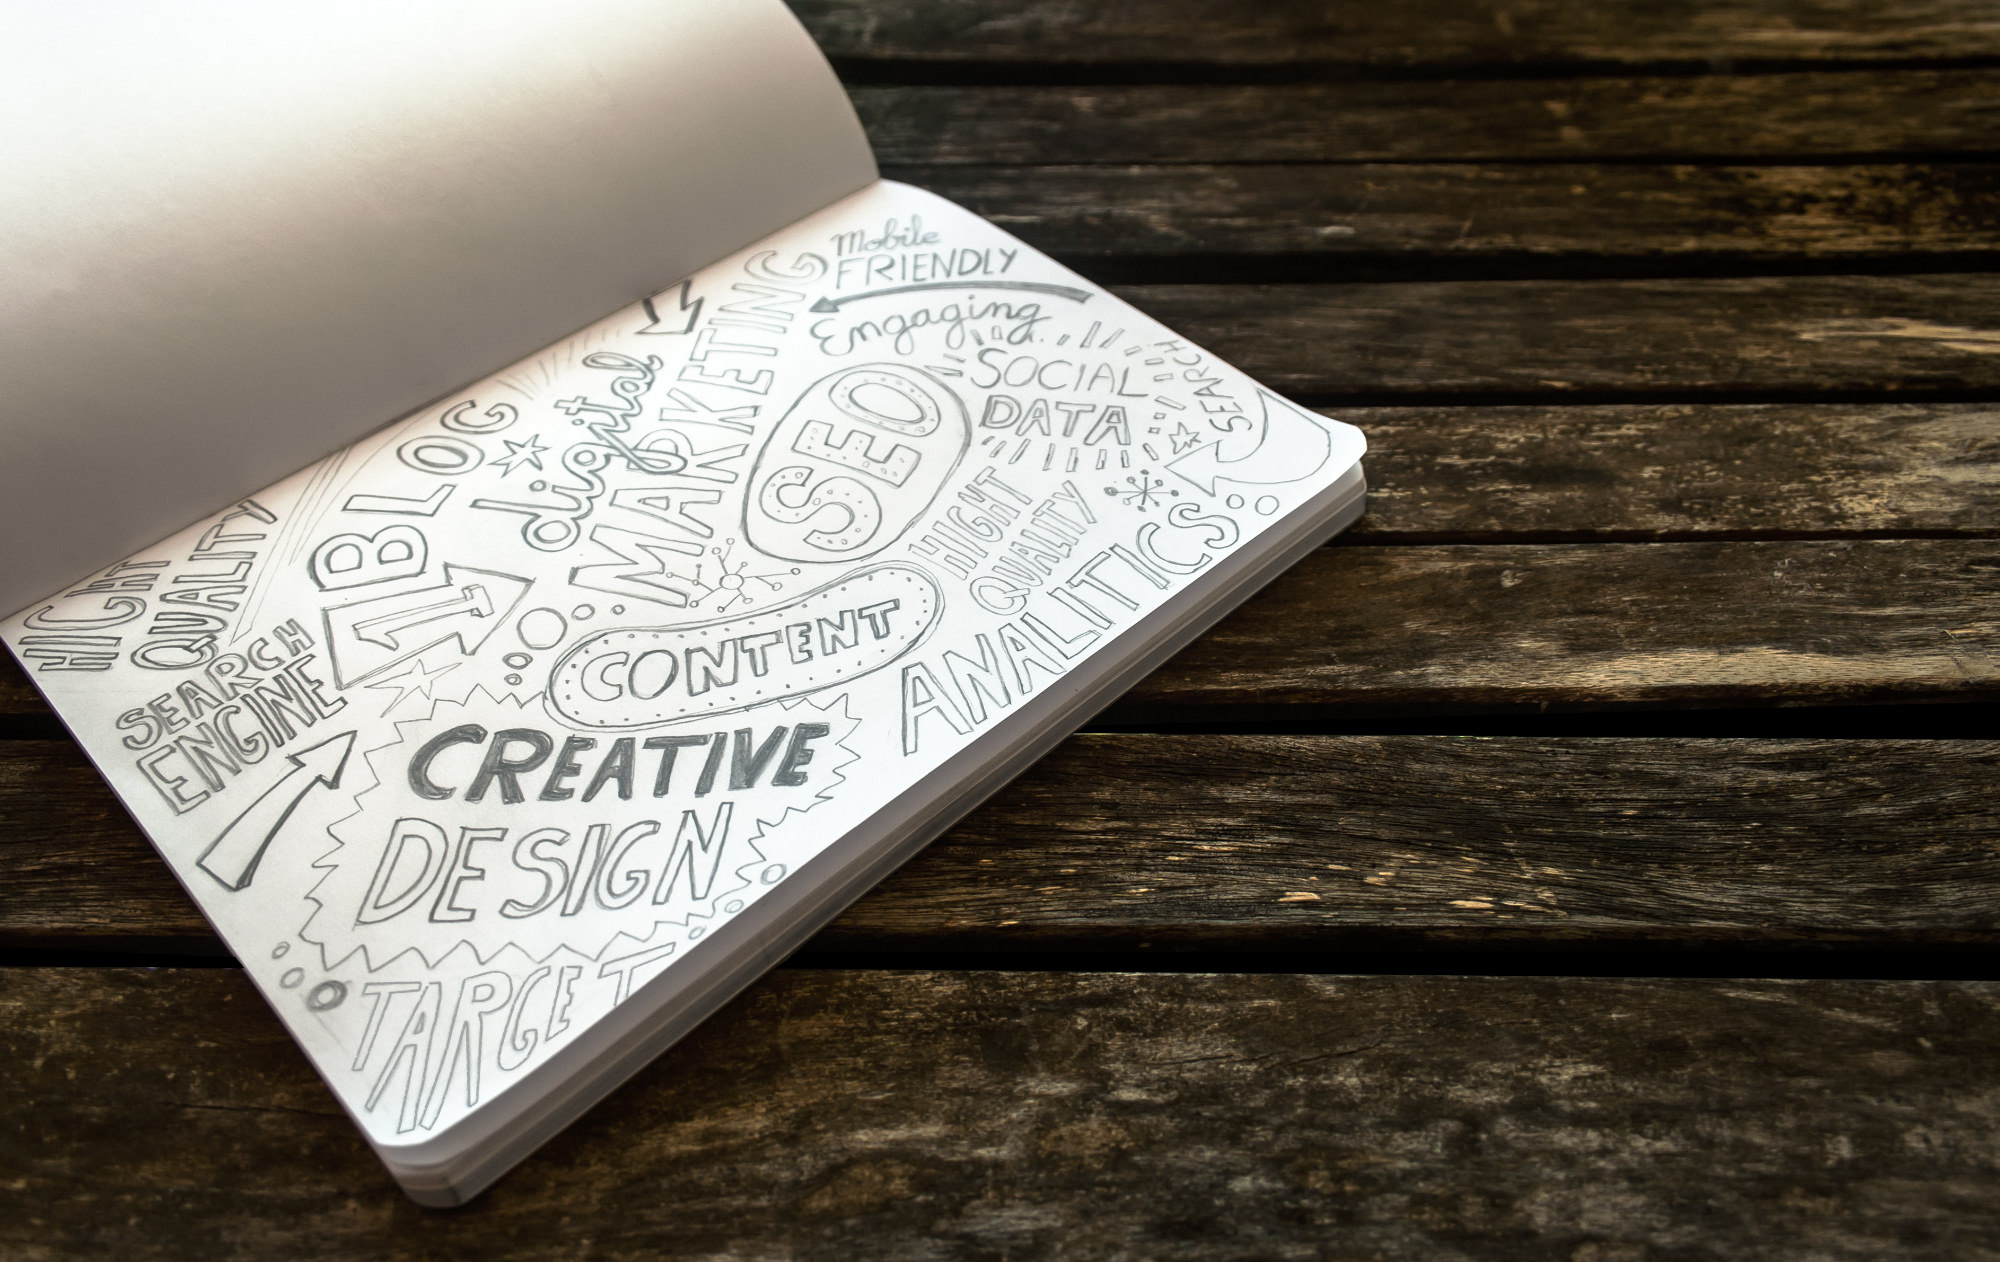 Notebook on a table with texts made ​​pencil. Sample internet concepts , websites, social media, digital marketing and design. The table is made of wood